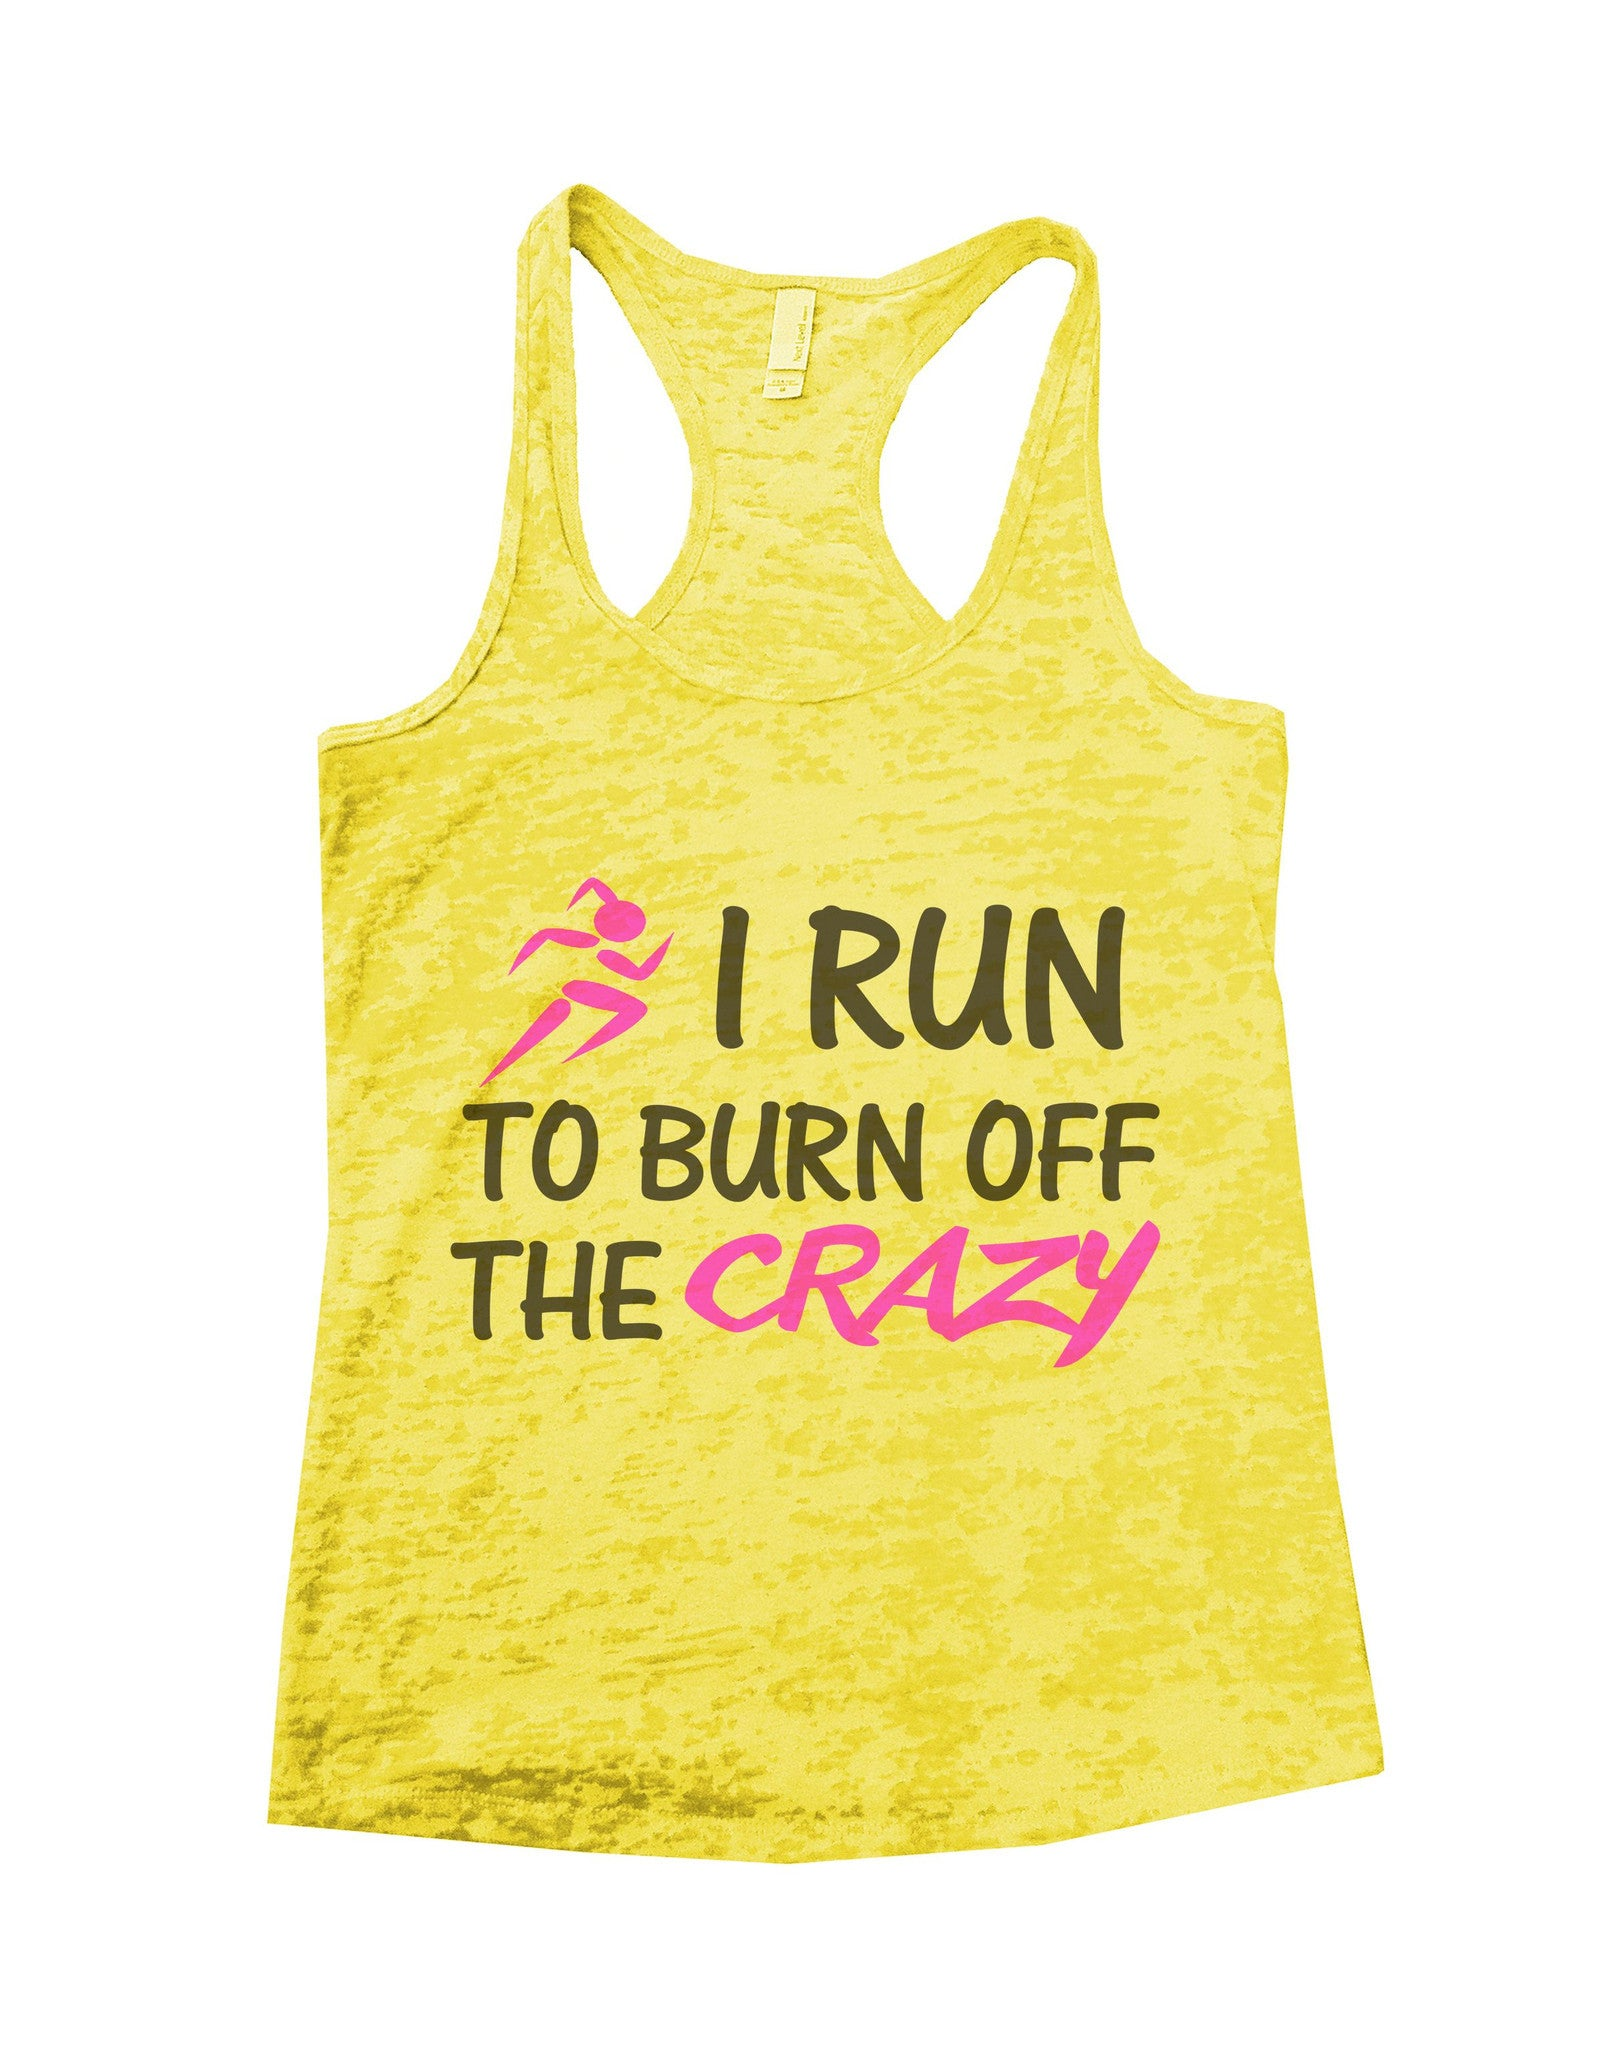 I Run To Burn Off The Crazy Burnout Tank Top By BurnoutTankTops.com - 623 - Funny Shirts Tank Tops Burnouts and Triblends  - 1